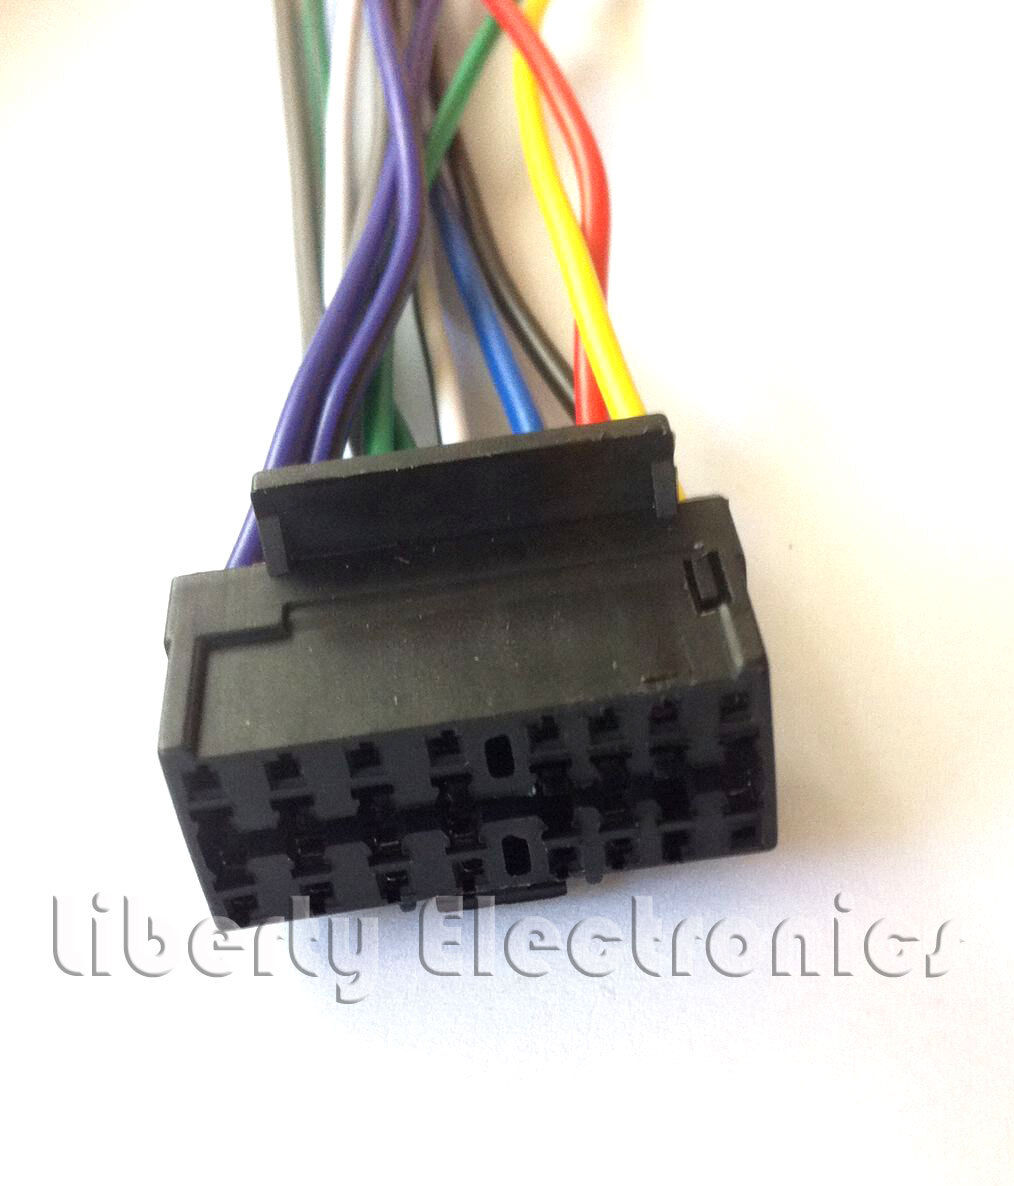 New Wire Harness For Pioneer Deh P3000 P3000r 1276 Picclick P5800mp 2 Of See More